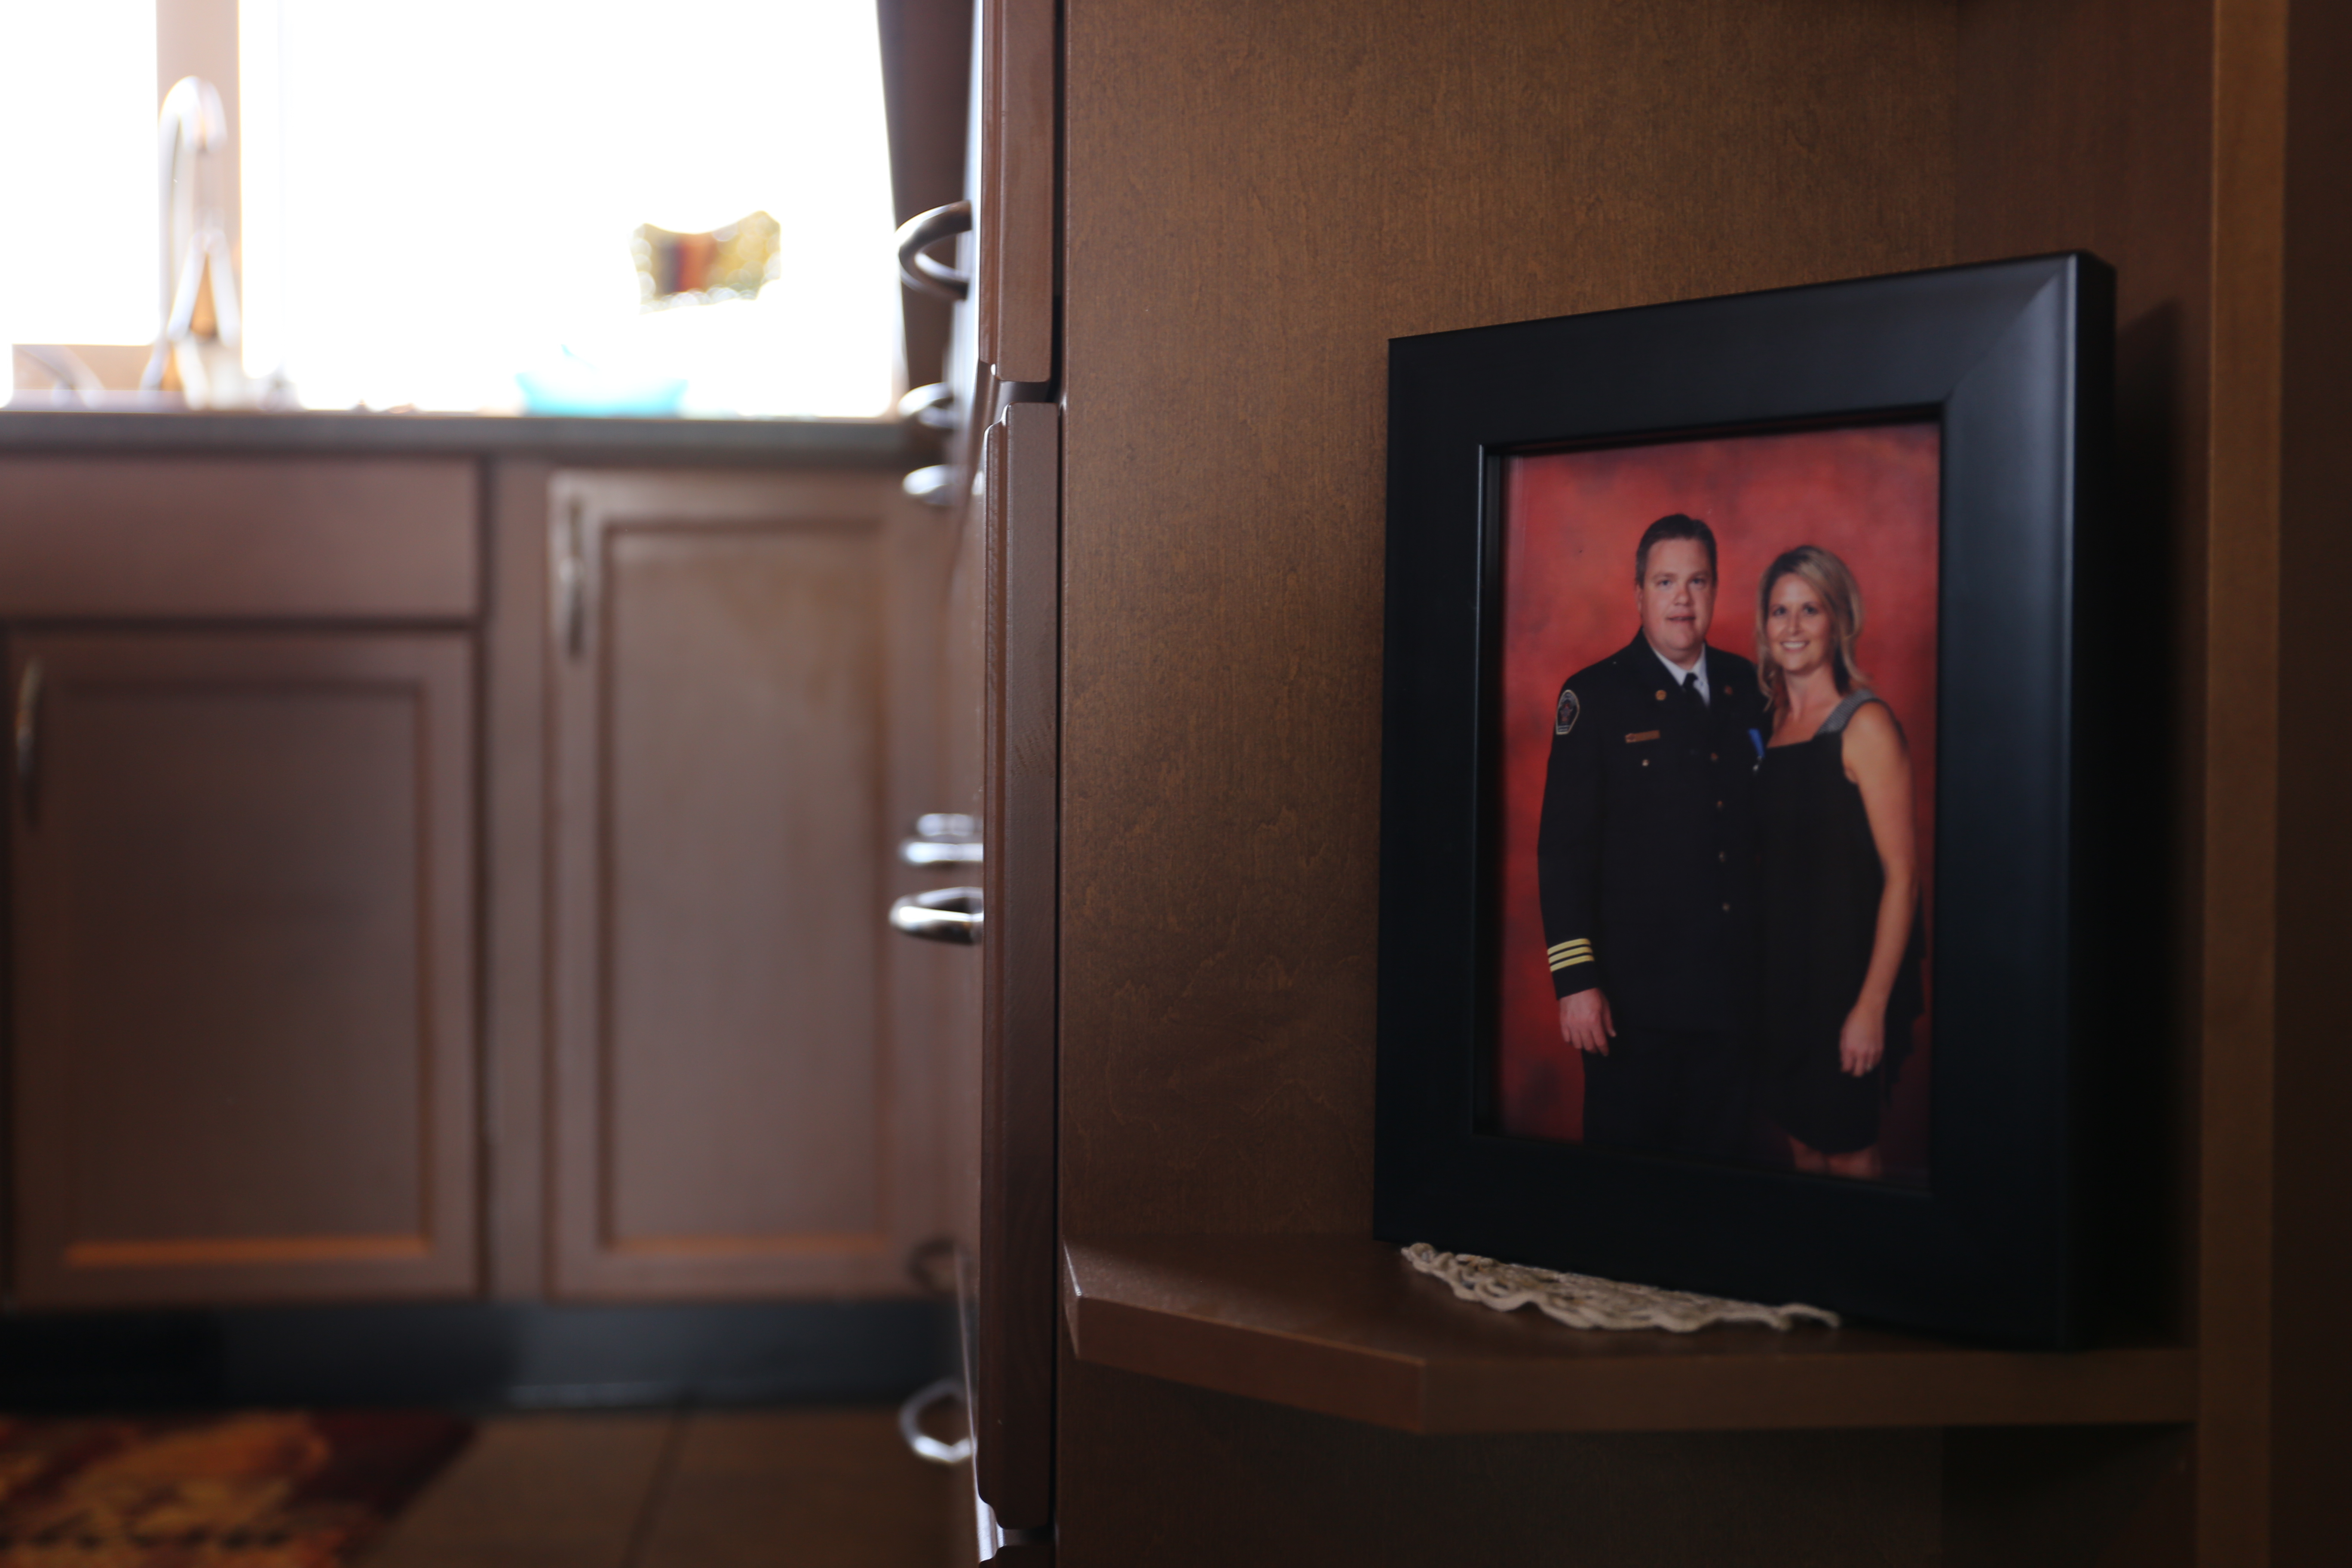 A framed photo of Jody Butz posing in uniform with his wife, sits in his family's kitchen. (Marion Warnica/CBC)